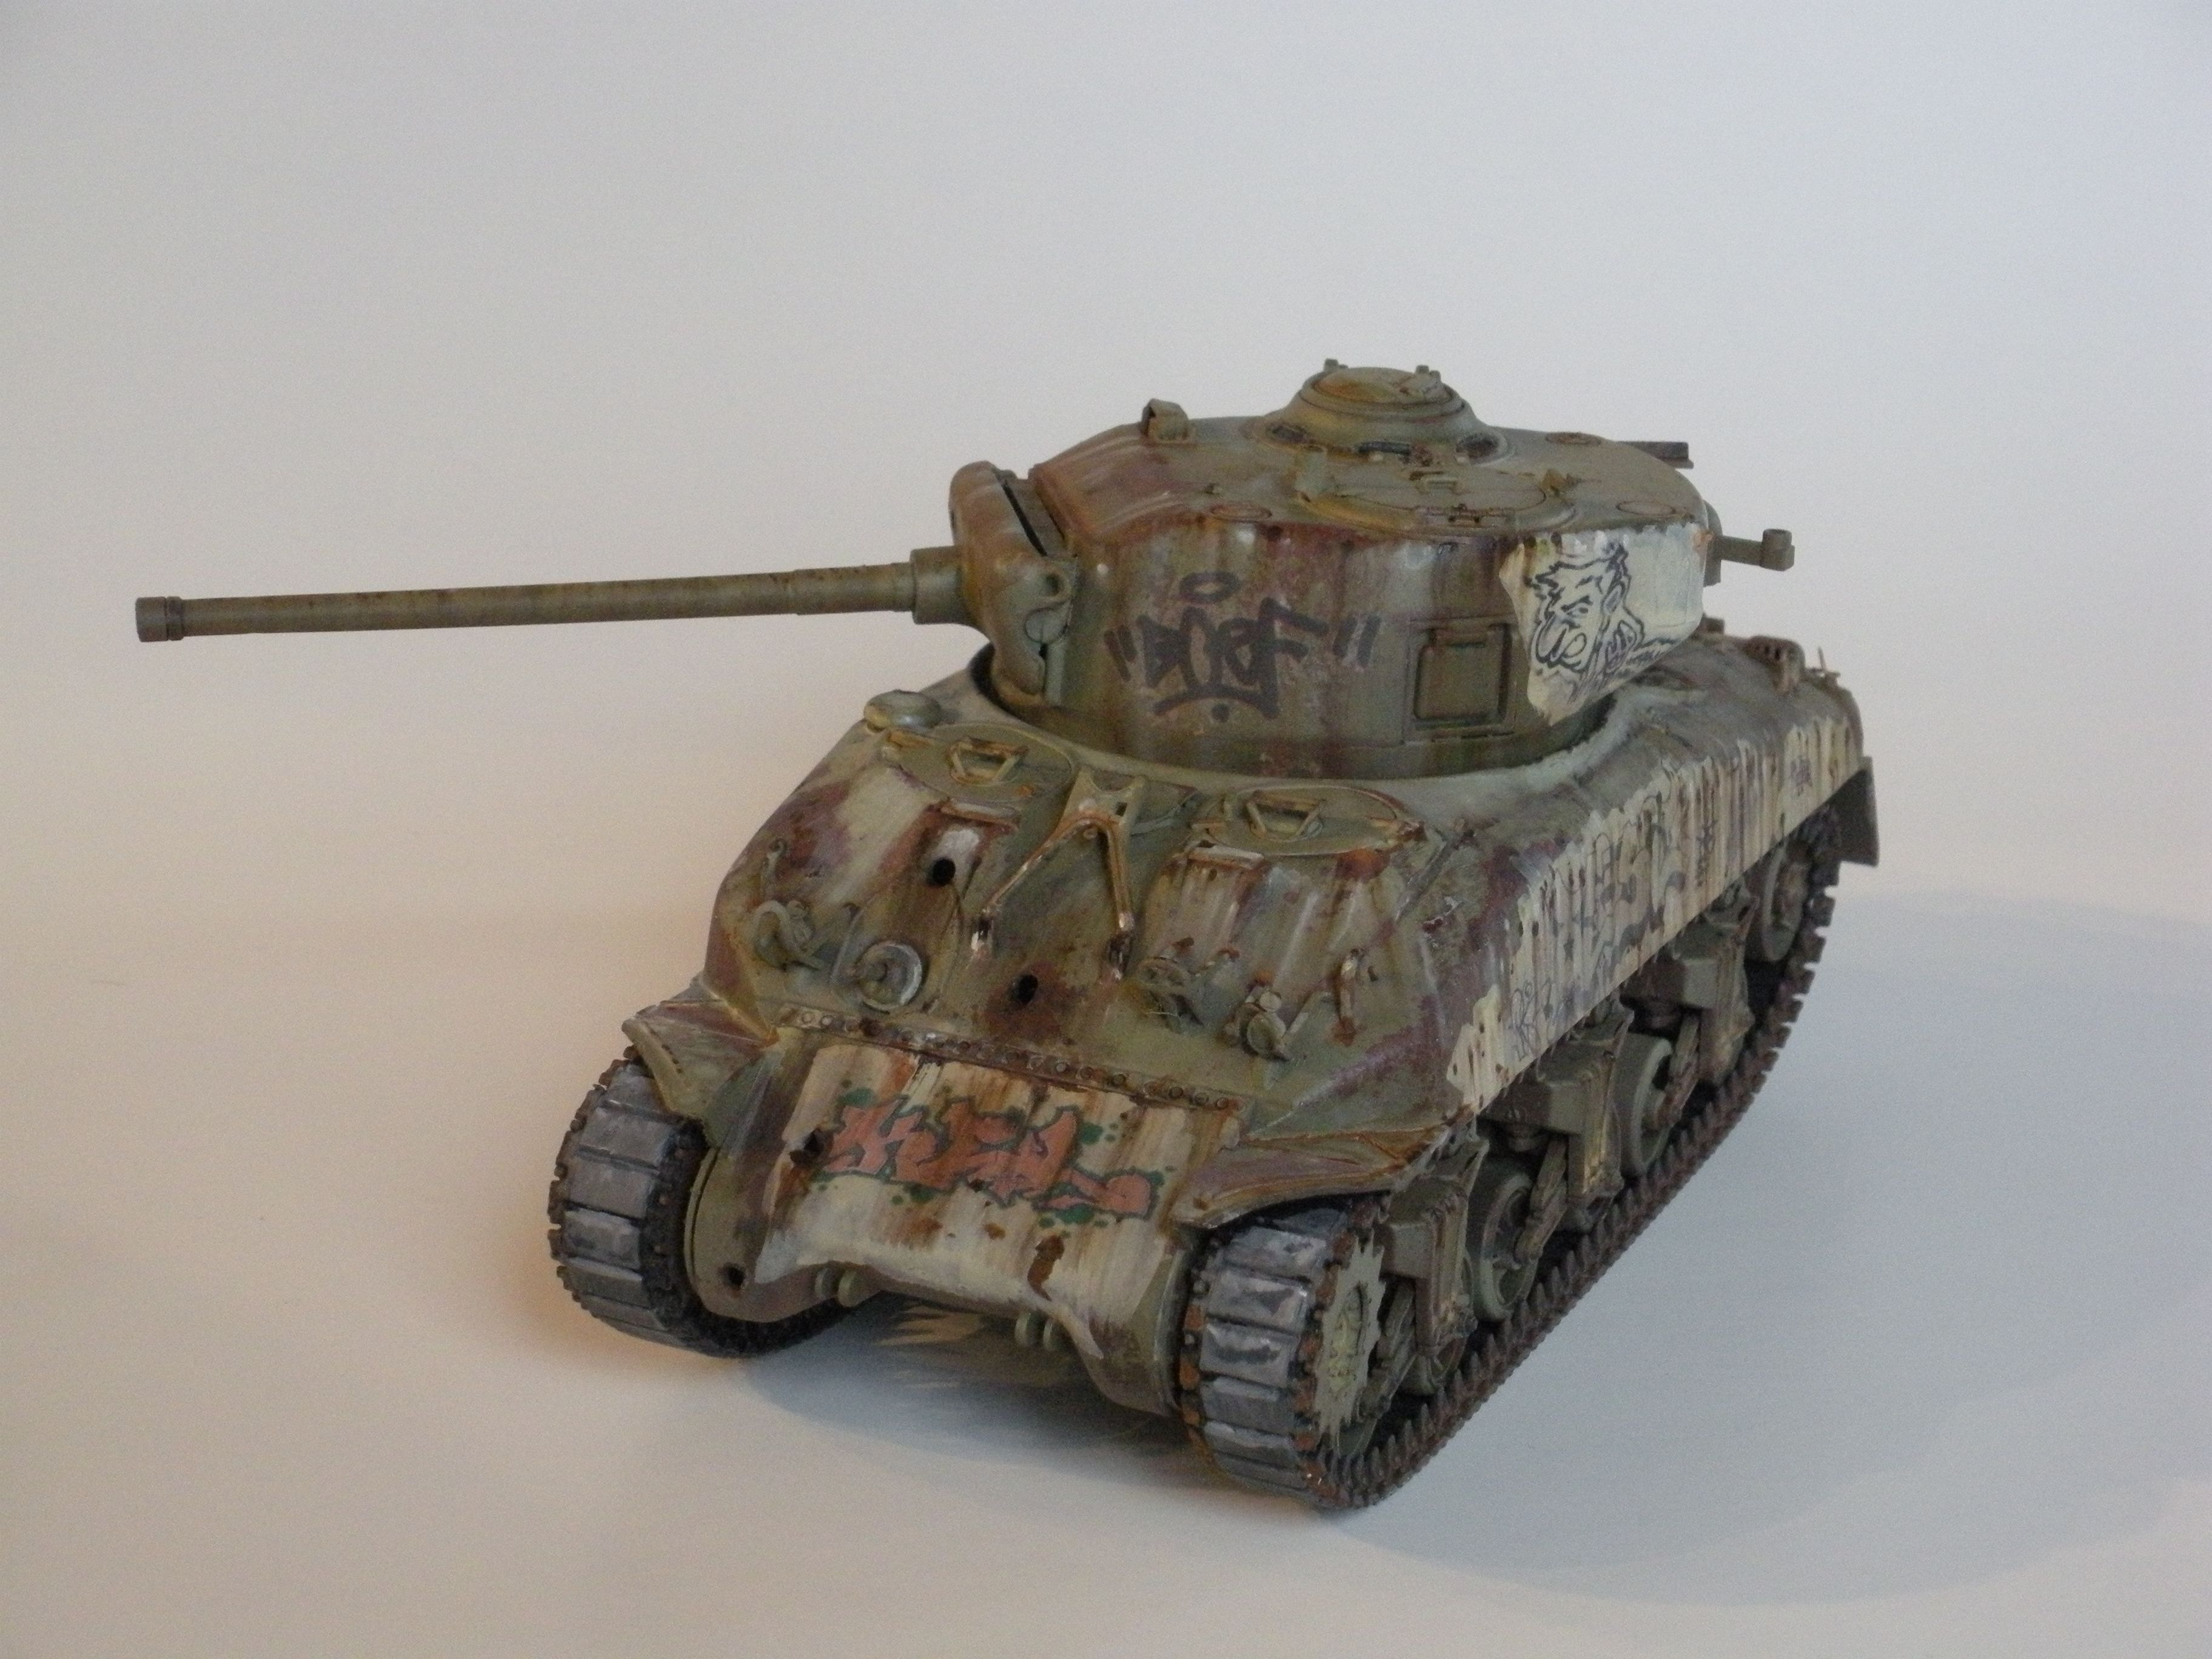 A weathered Sherman Tank 1/35th scale by Marcel Scuderi